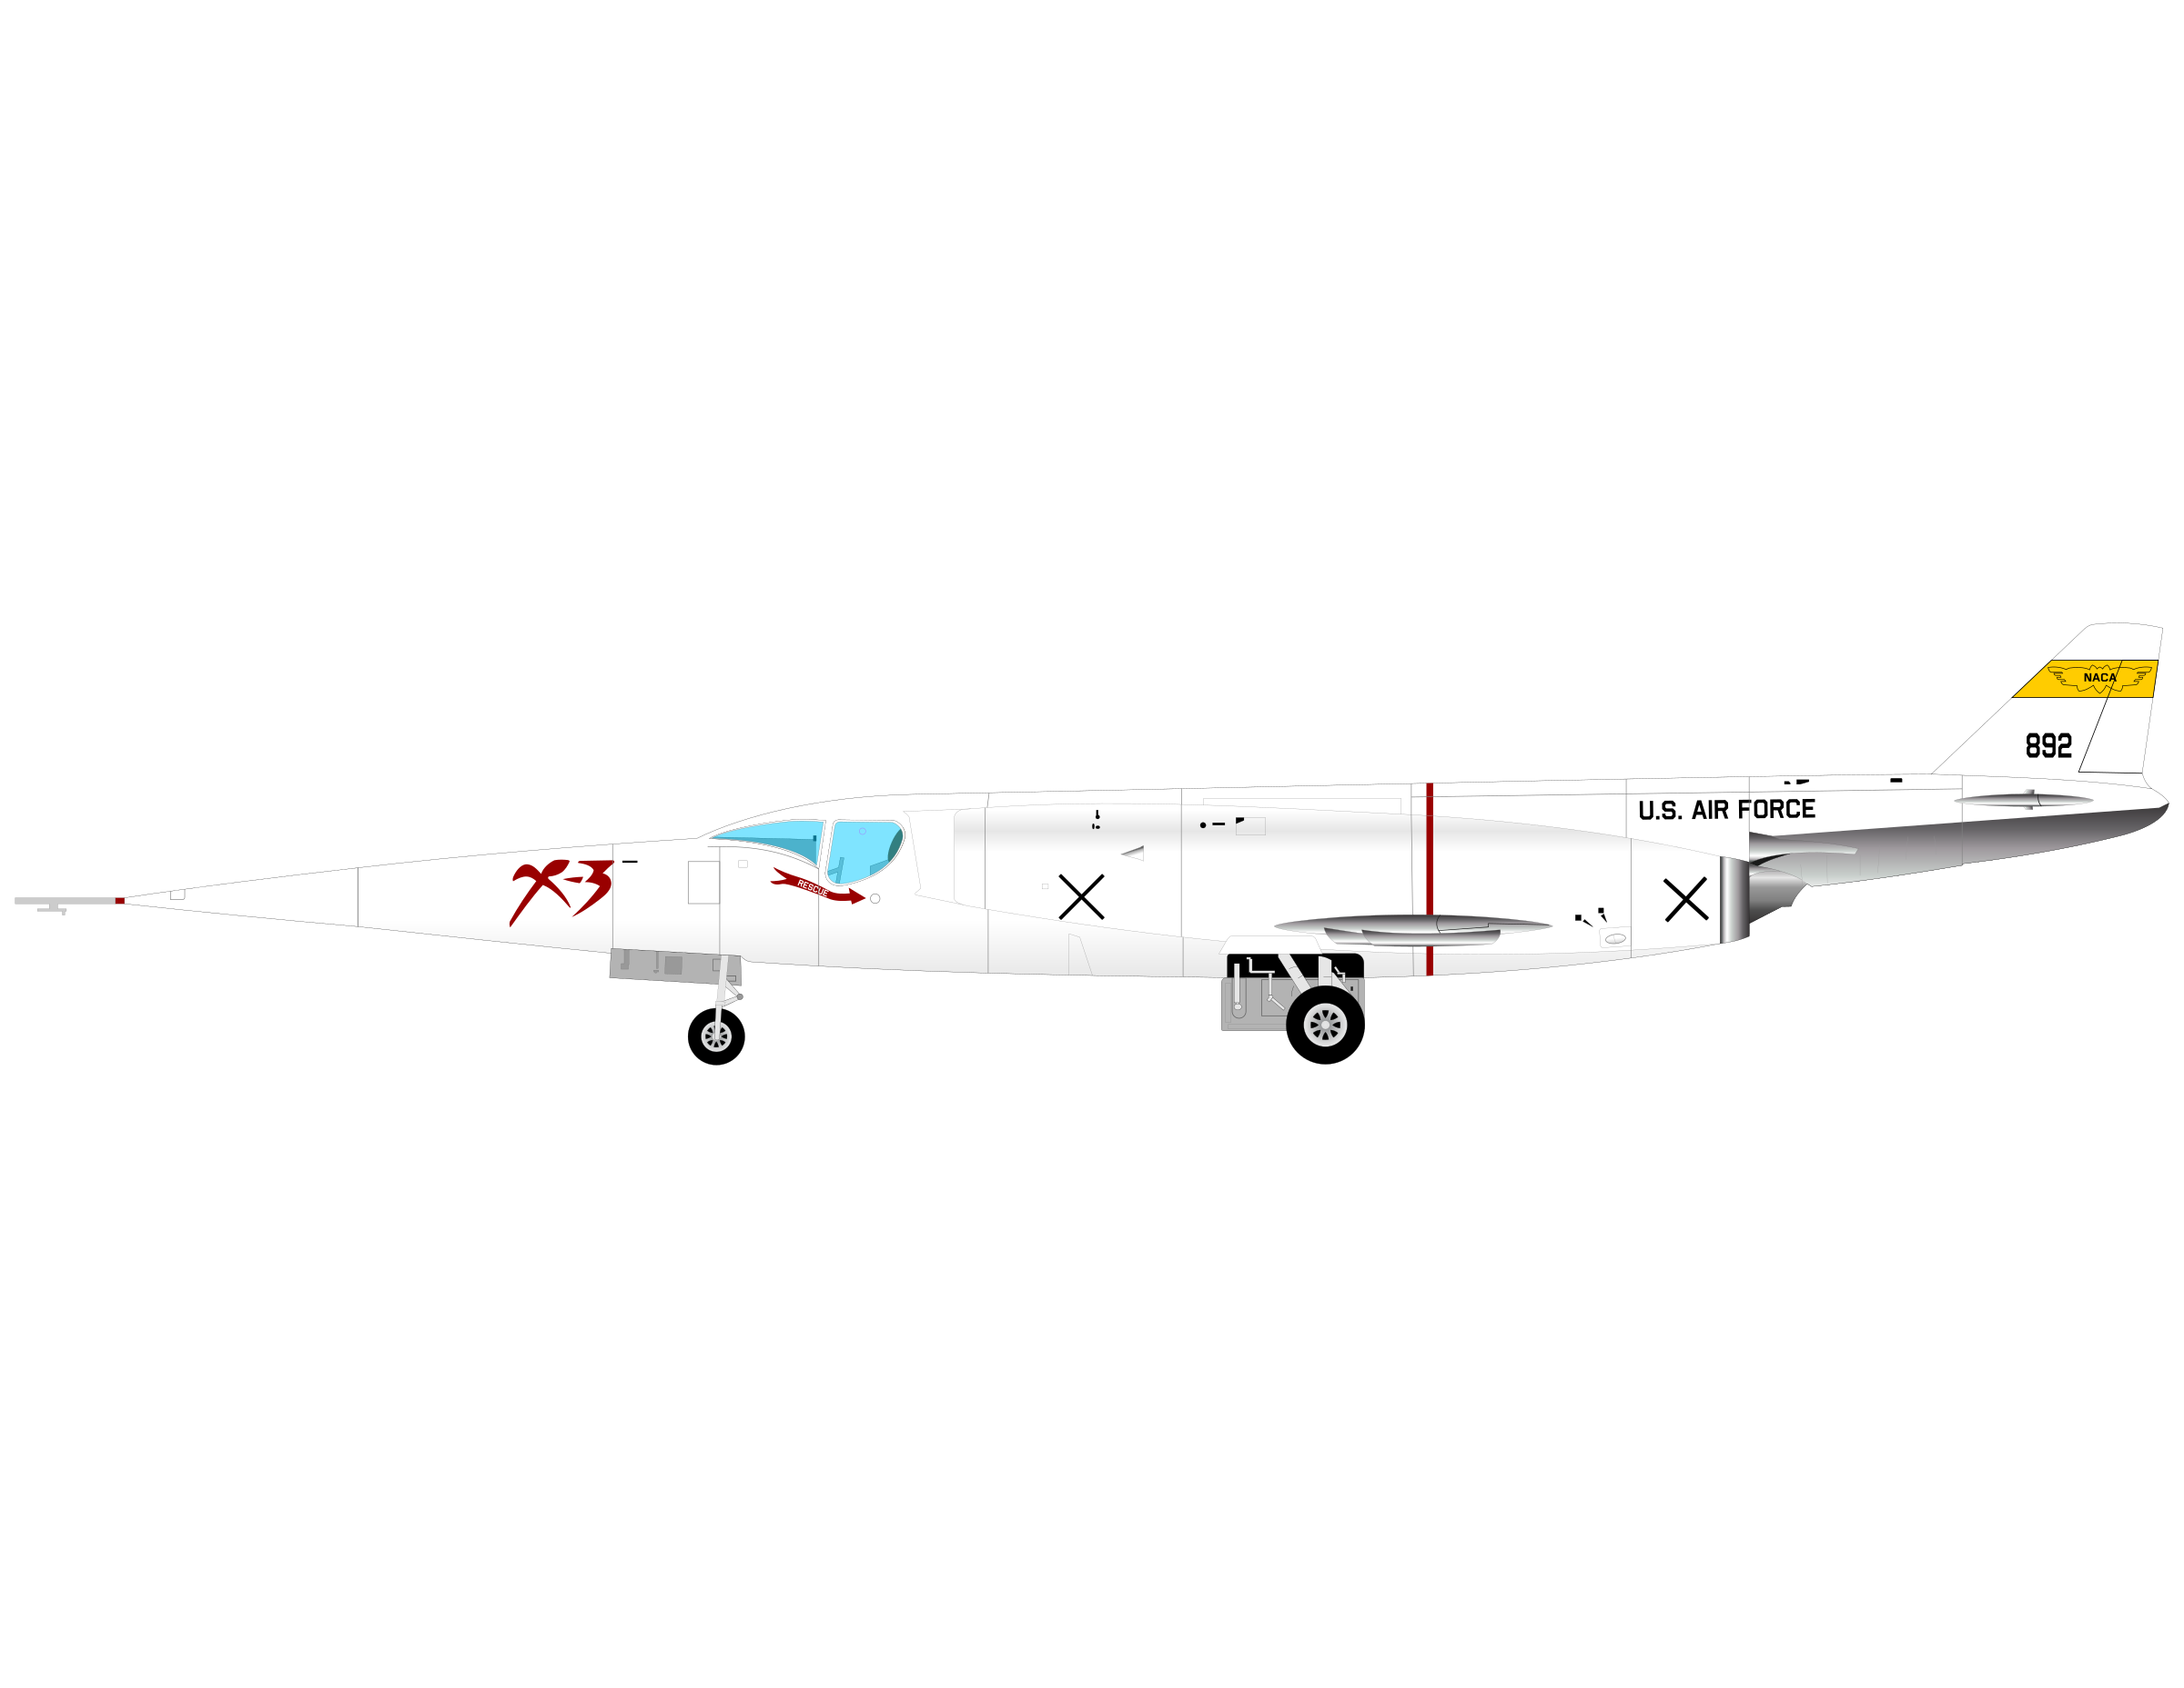 X-3 by charner1963